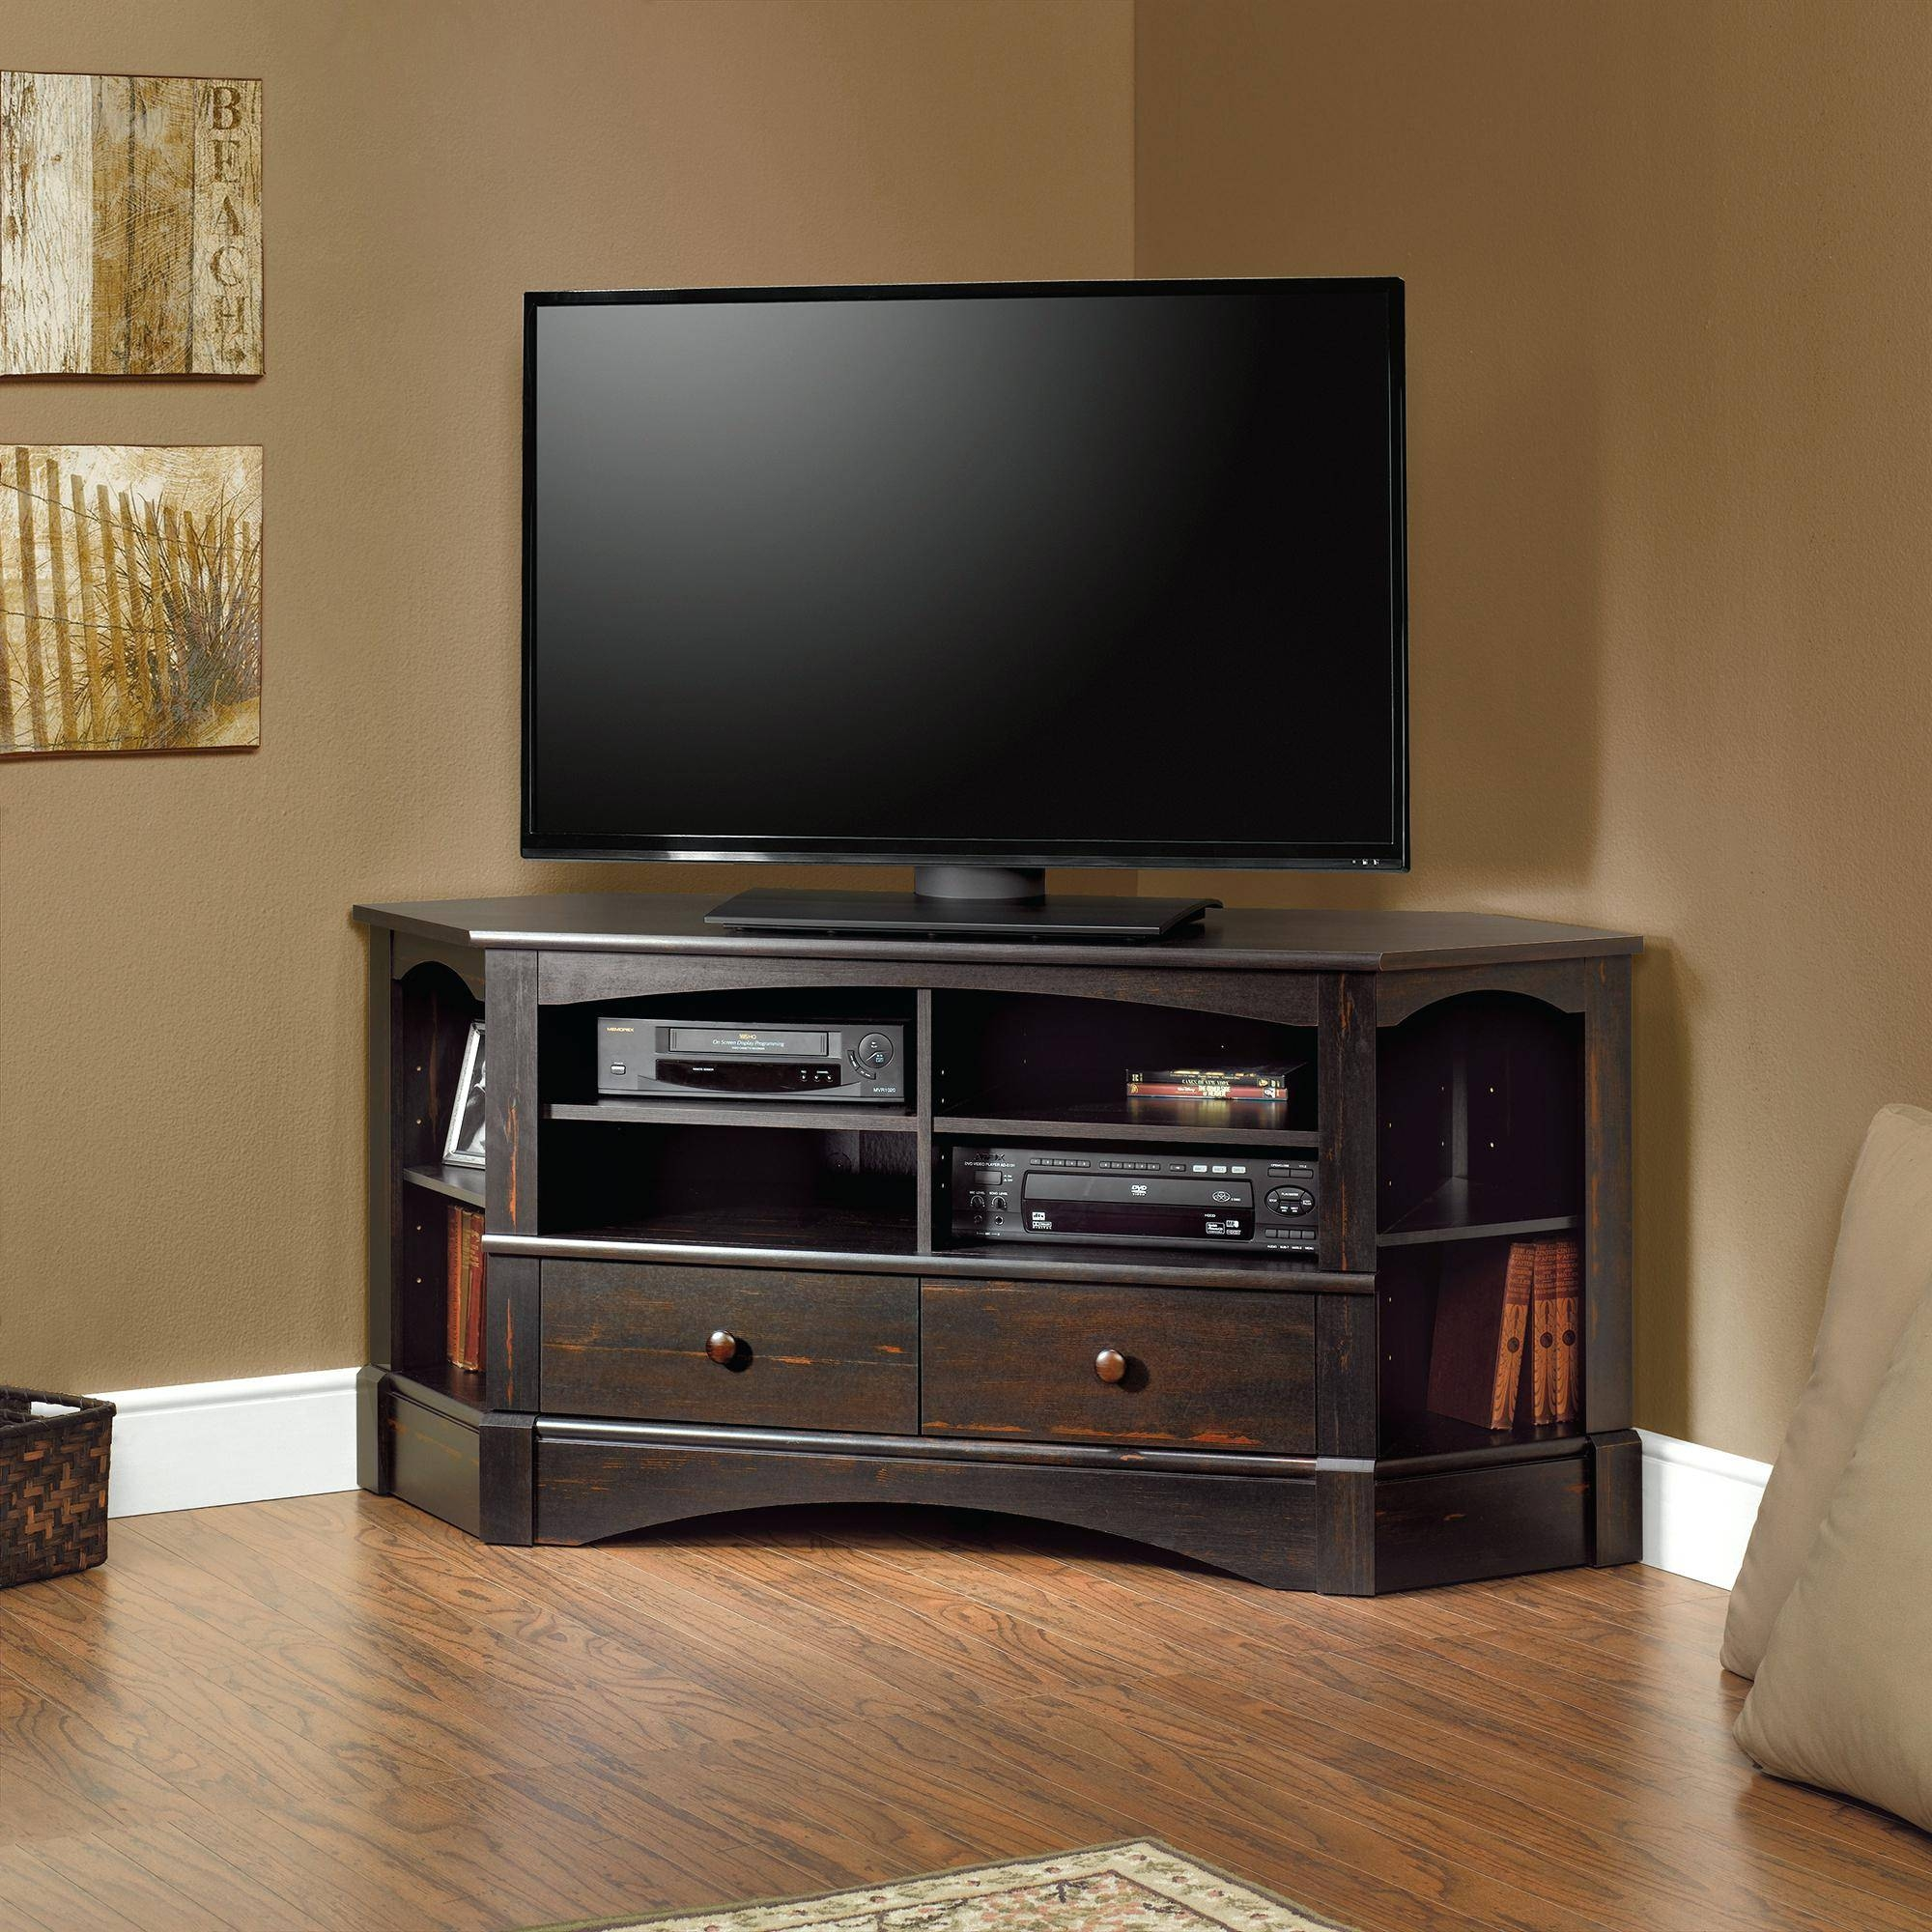 Tv Stand : Natural Color Tv Stands Mesmerizing 50 Inch Flat Screen inside Fancy Tv Stands (Image 14 of 15)